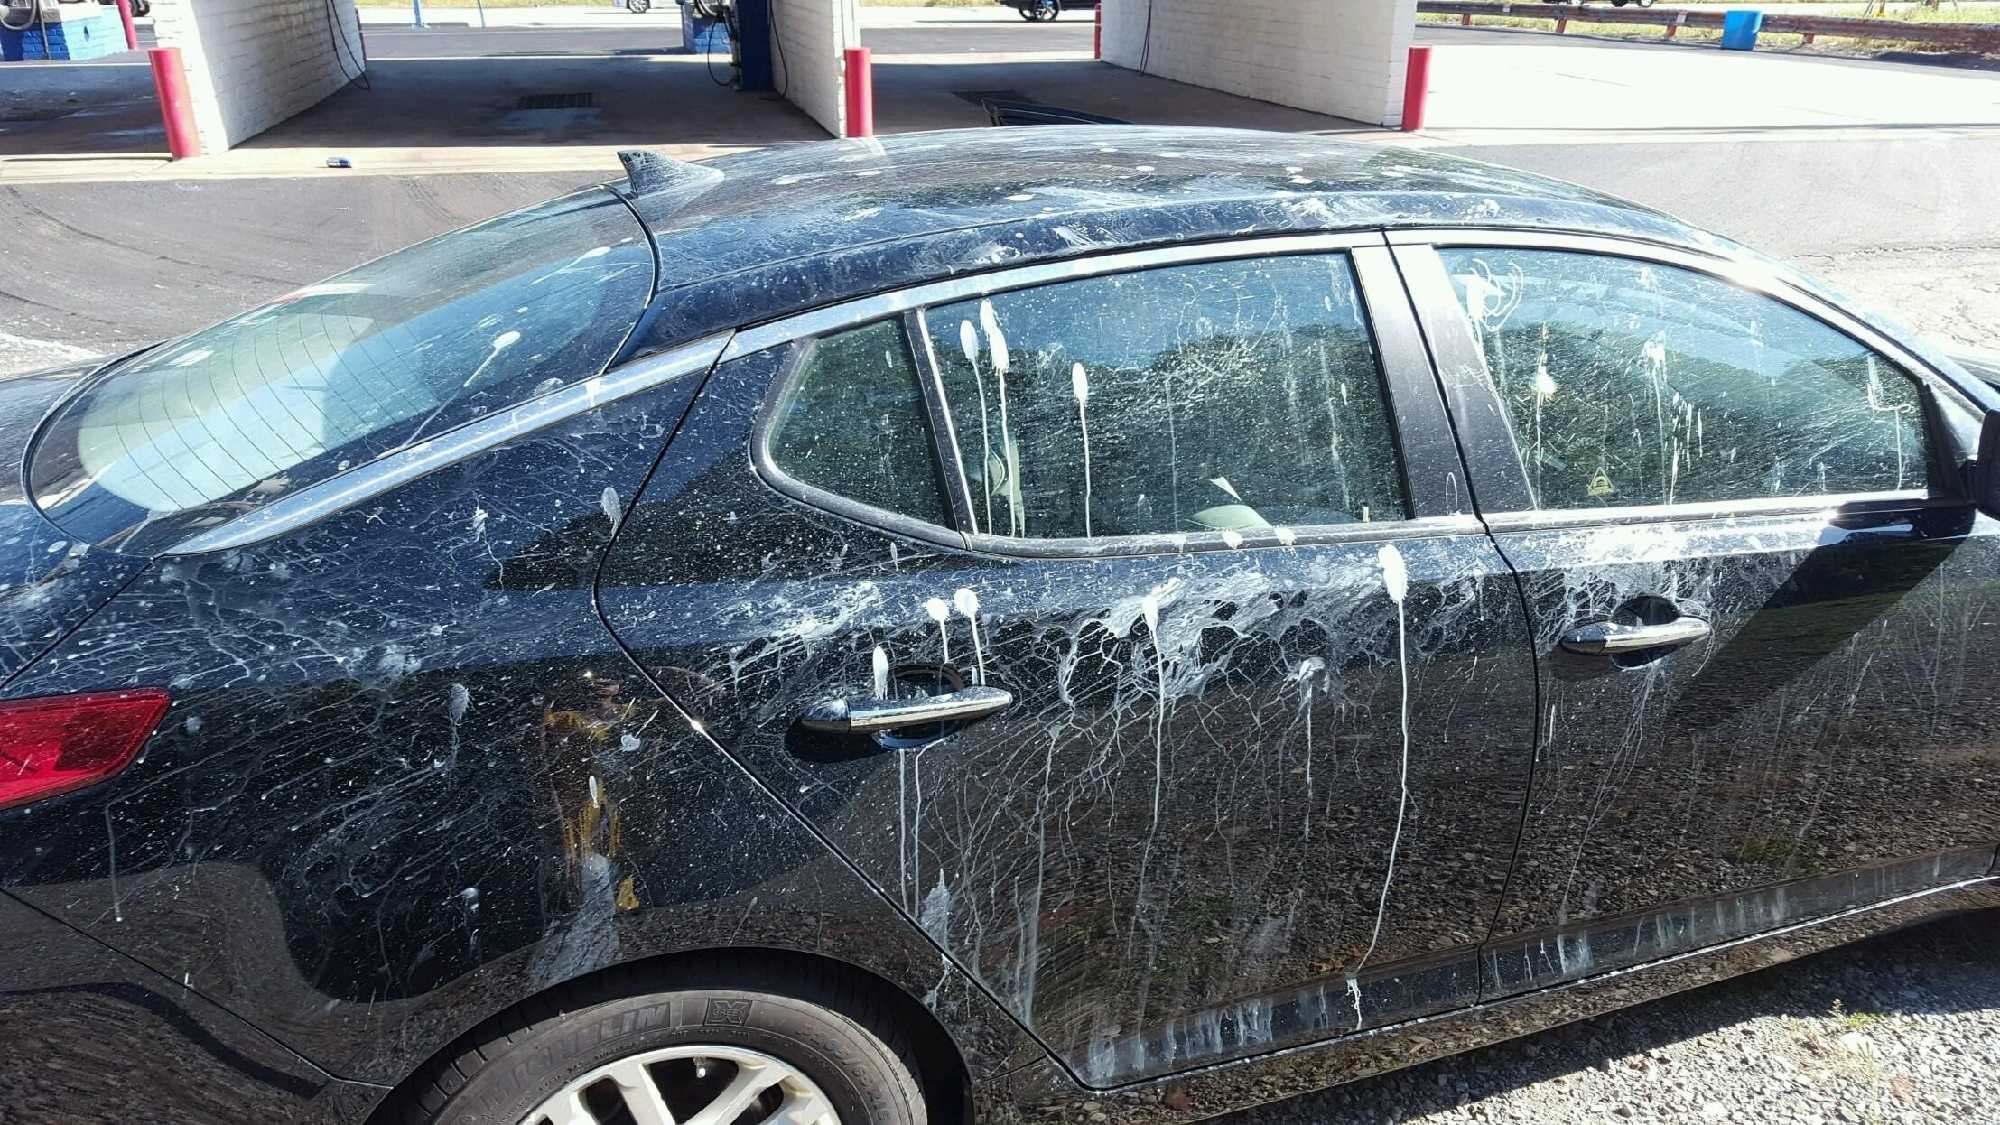 img-Trip to the car wash ends in paint-splattered mess